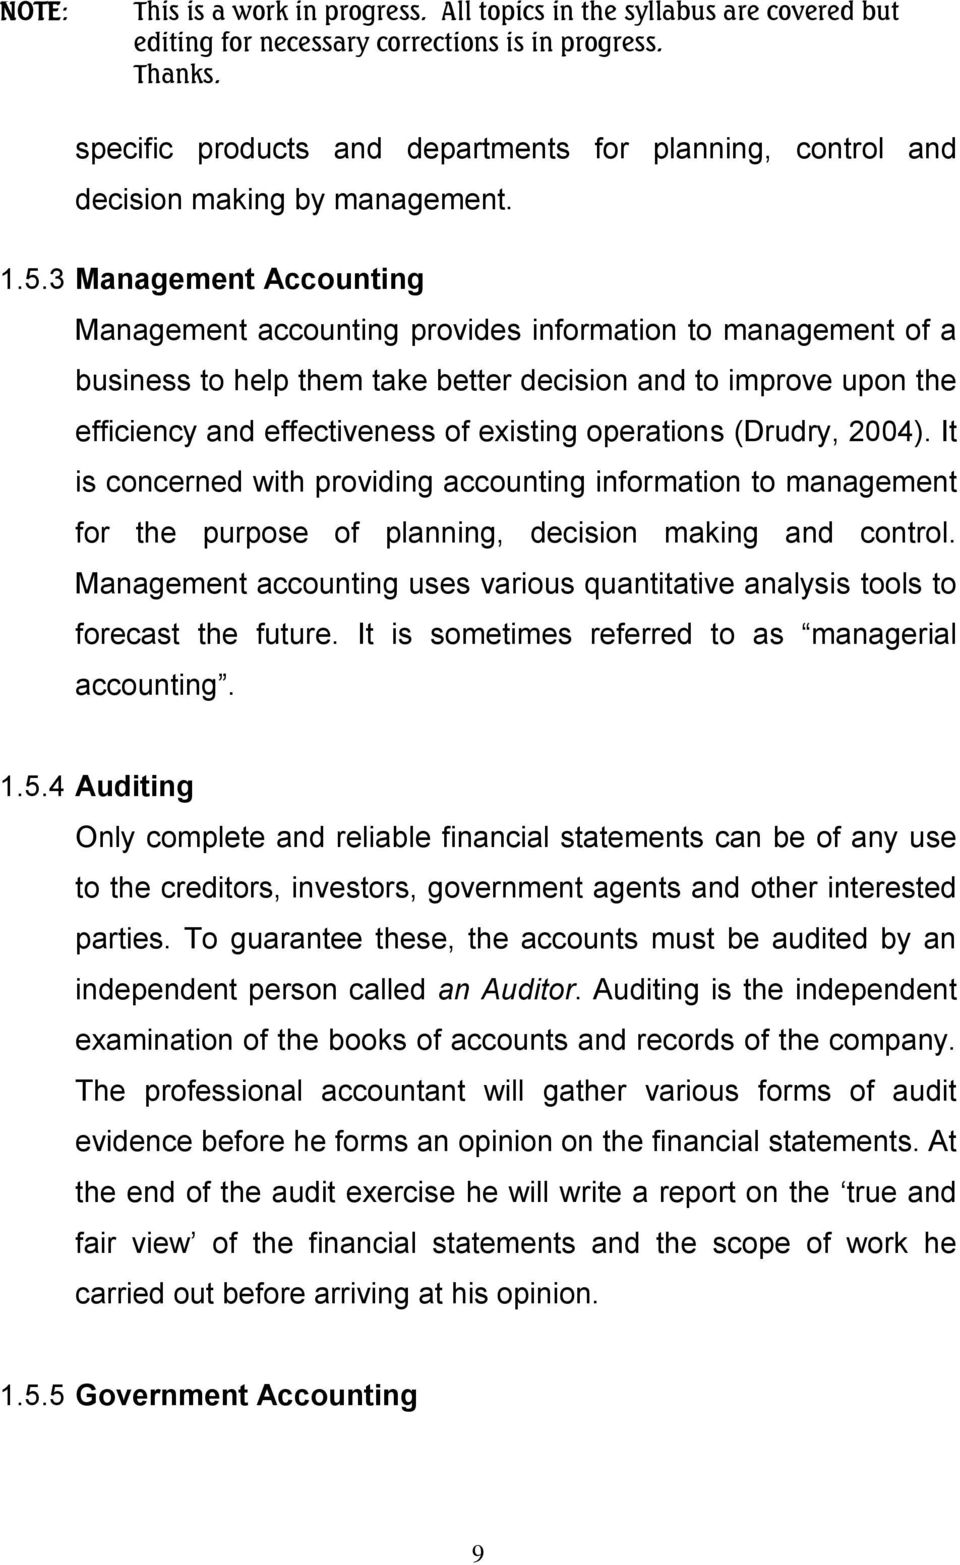 ACCOUNTING TECHNICIANS SCHEME (WEST AFRICA) BASIC ACCOUNTING